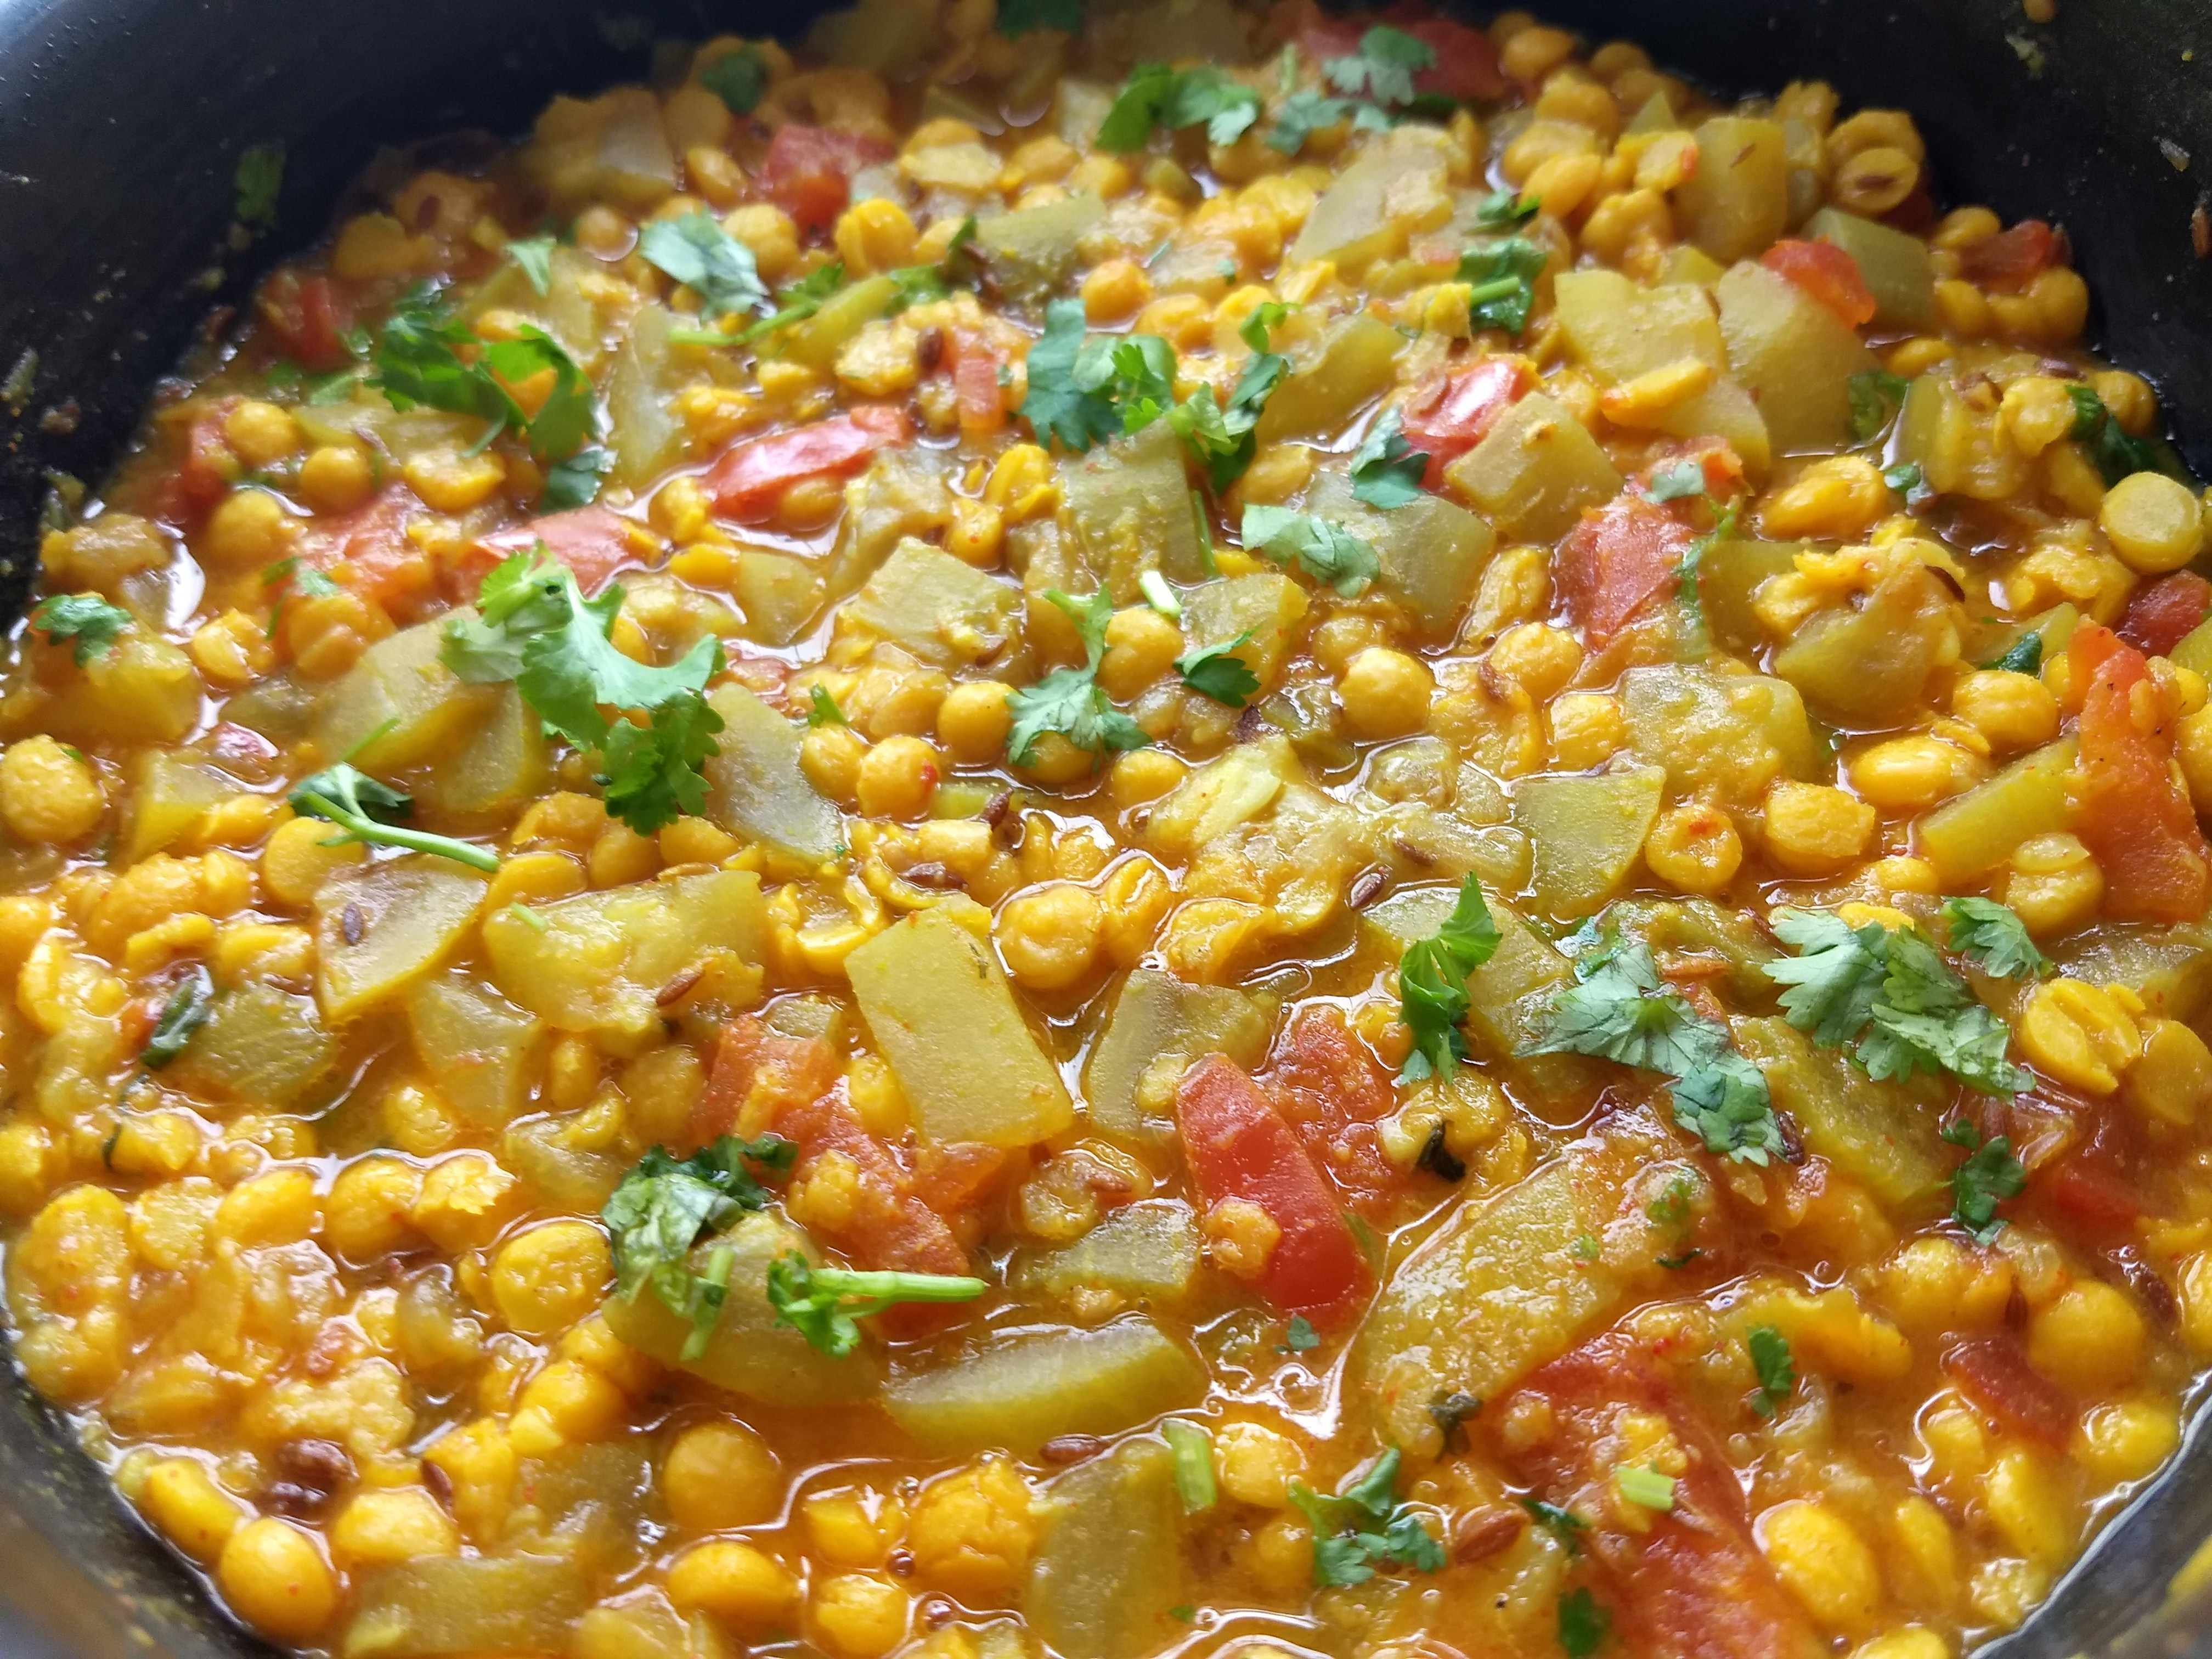 Delicious Chana Dal With Lauki Sabzi Pakistani Food Recipe: